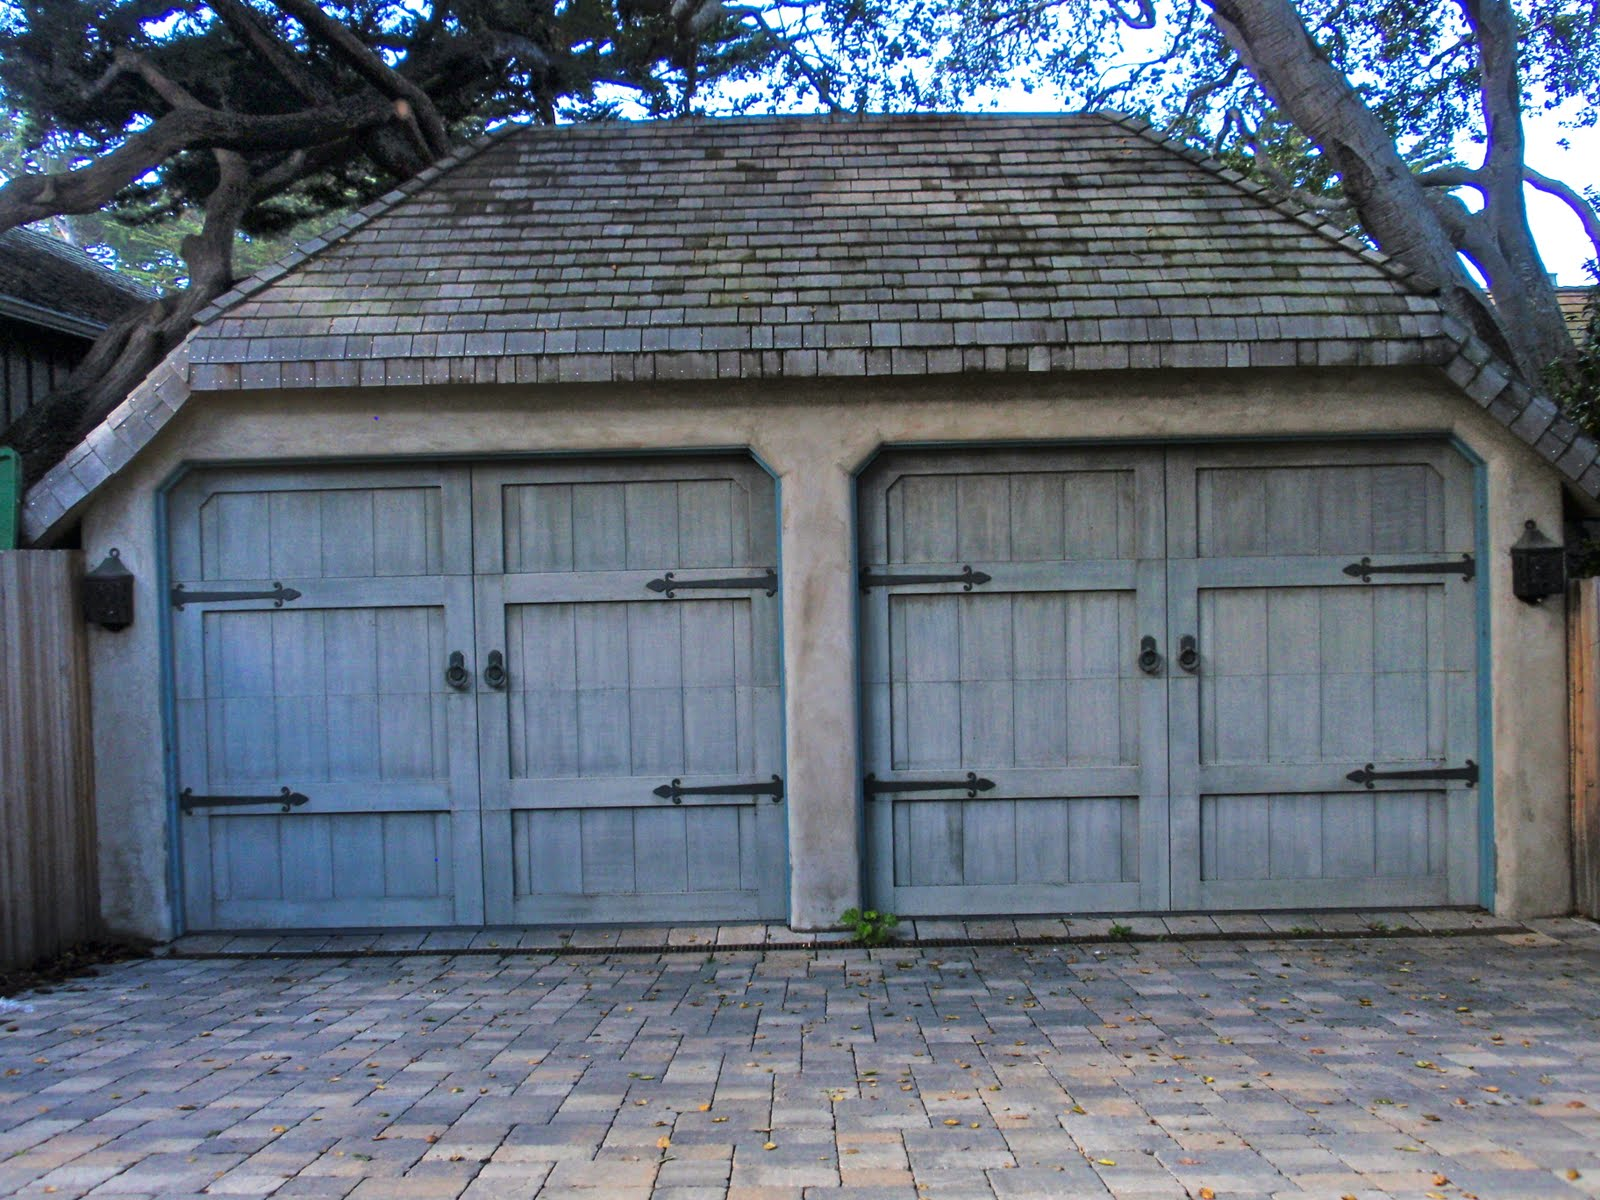 Carport With Garage Door : Th and state have you decorated your garage lately